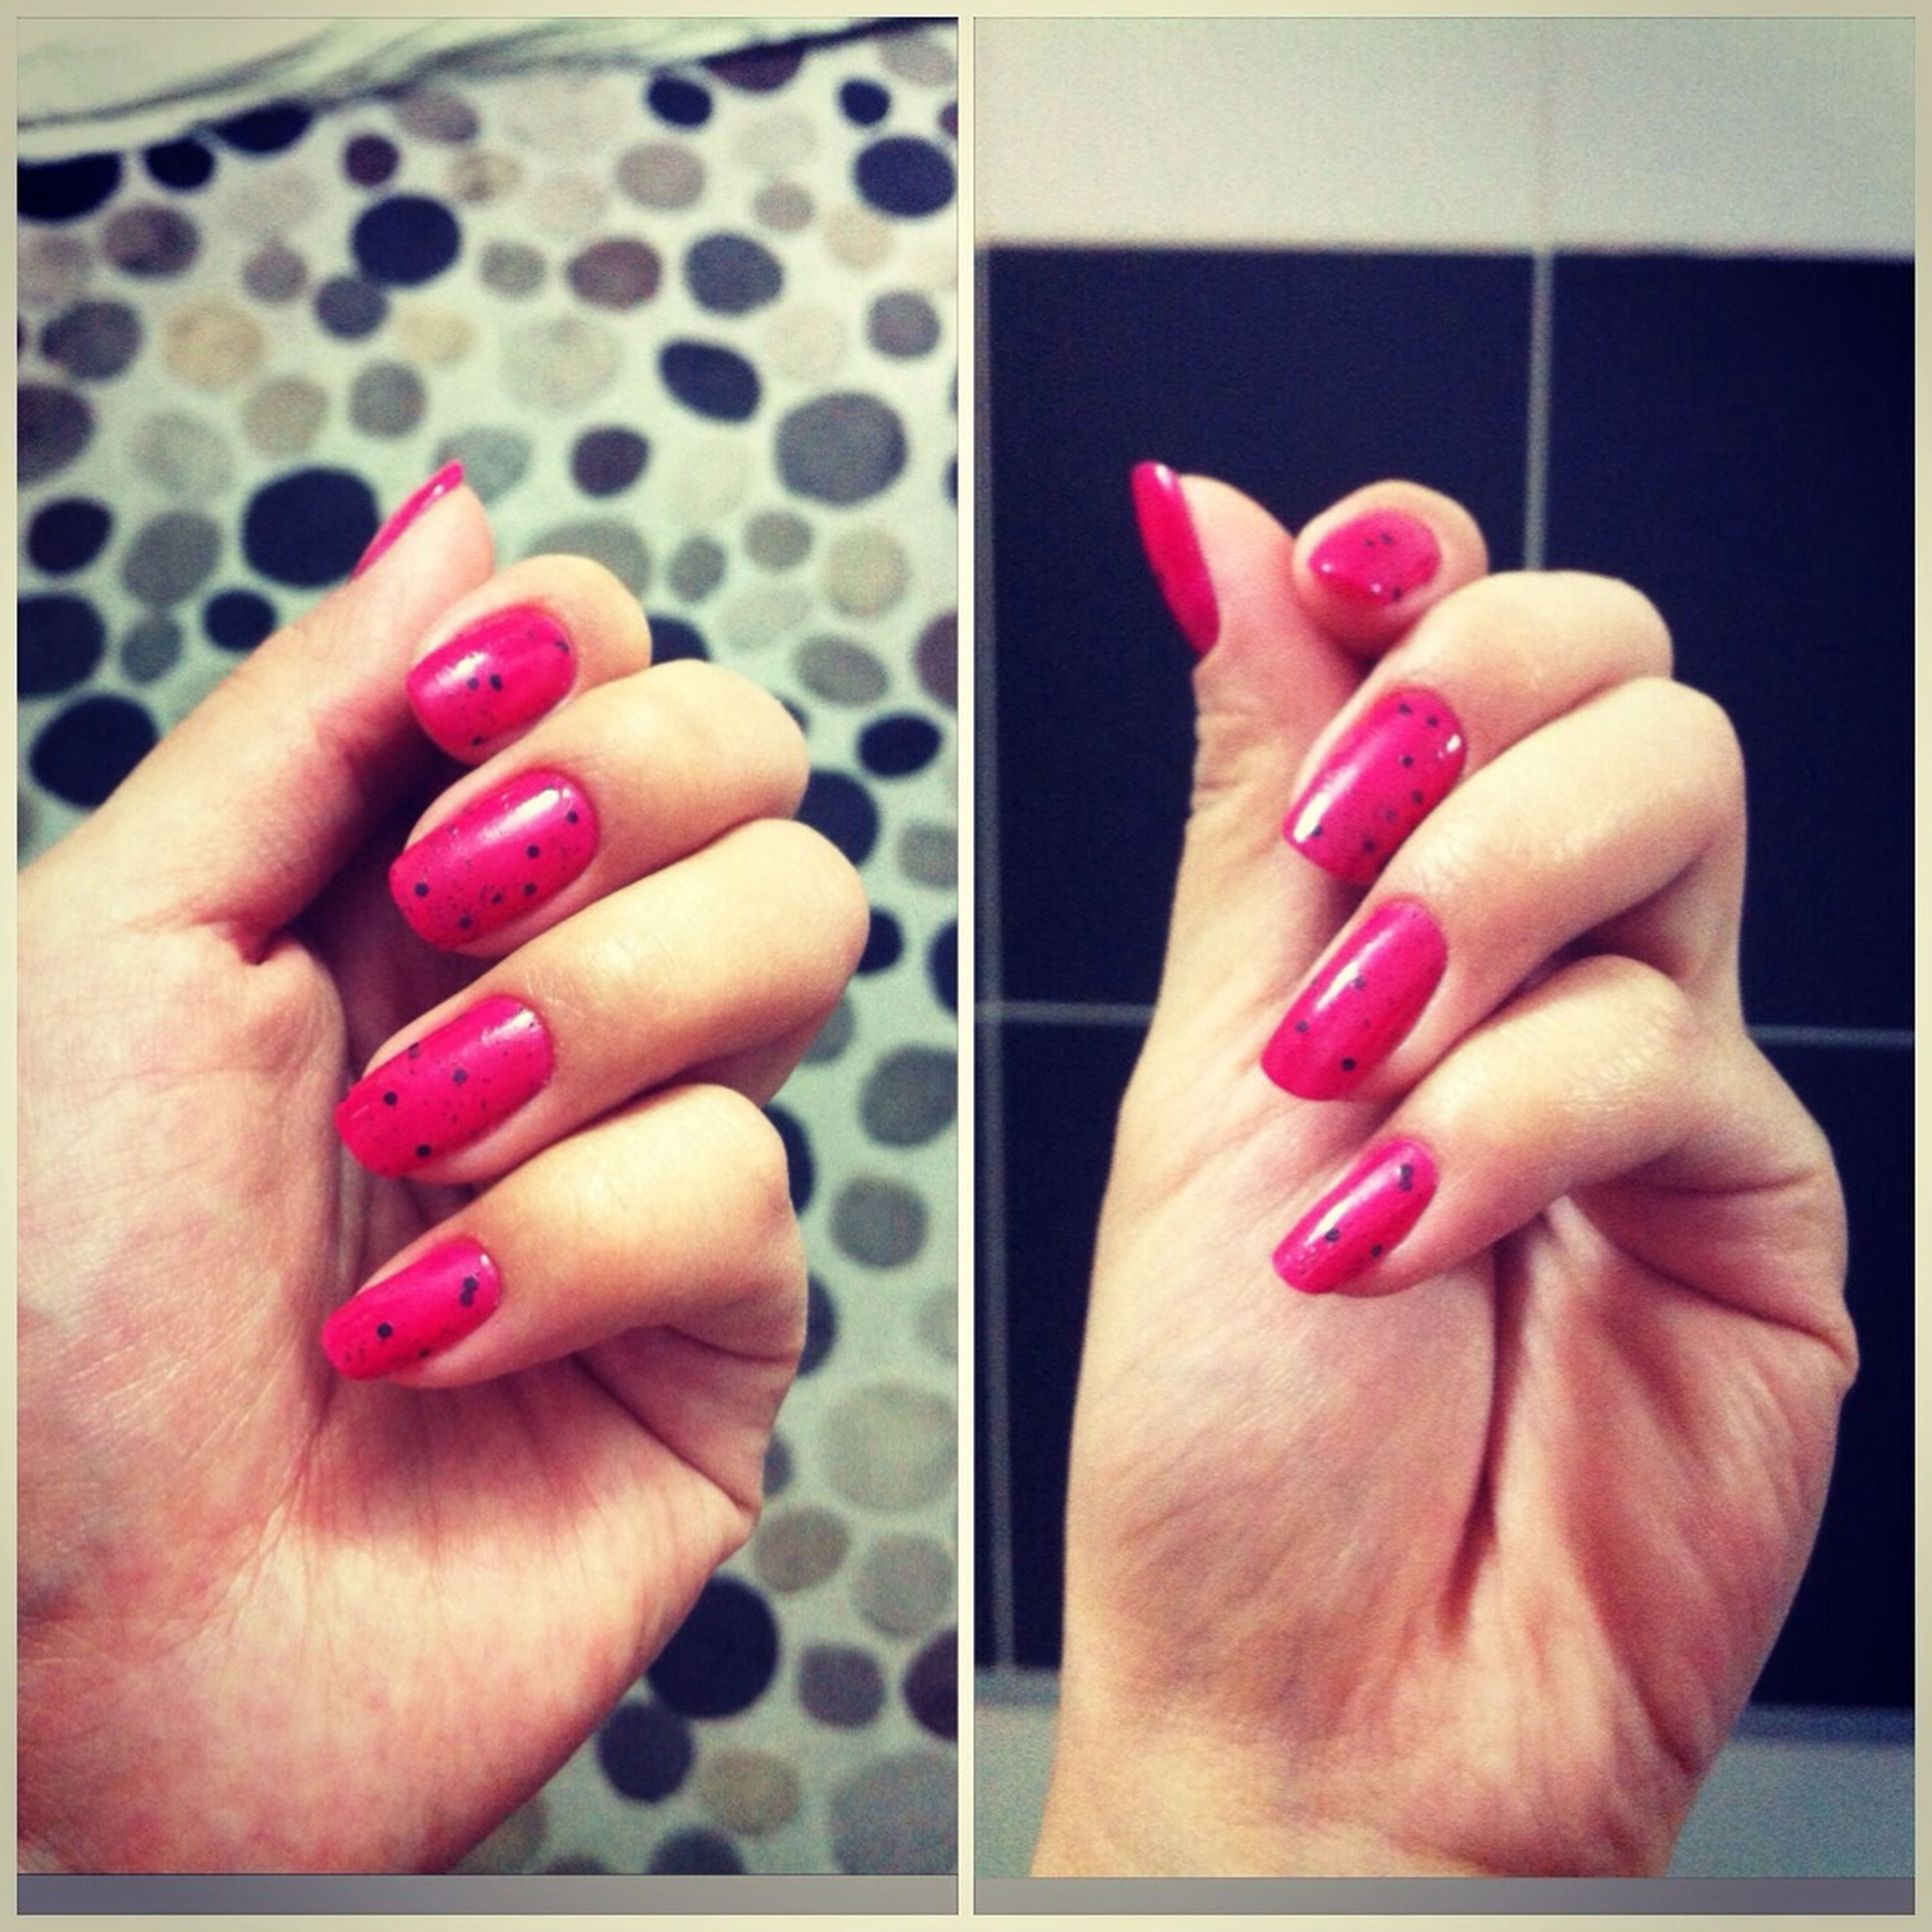 person, part of, human finger, indoors, cropped, holding, close-up, nail polish, unrecognizable person, high angle view, personal perspective, pink color, red, table, pencil, showing